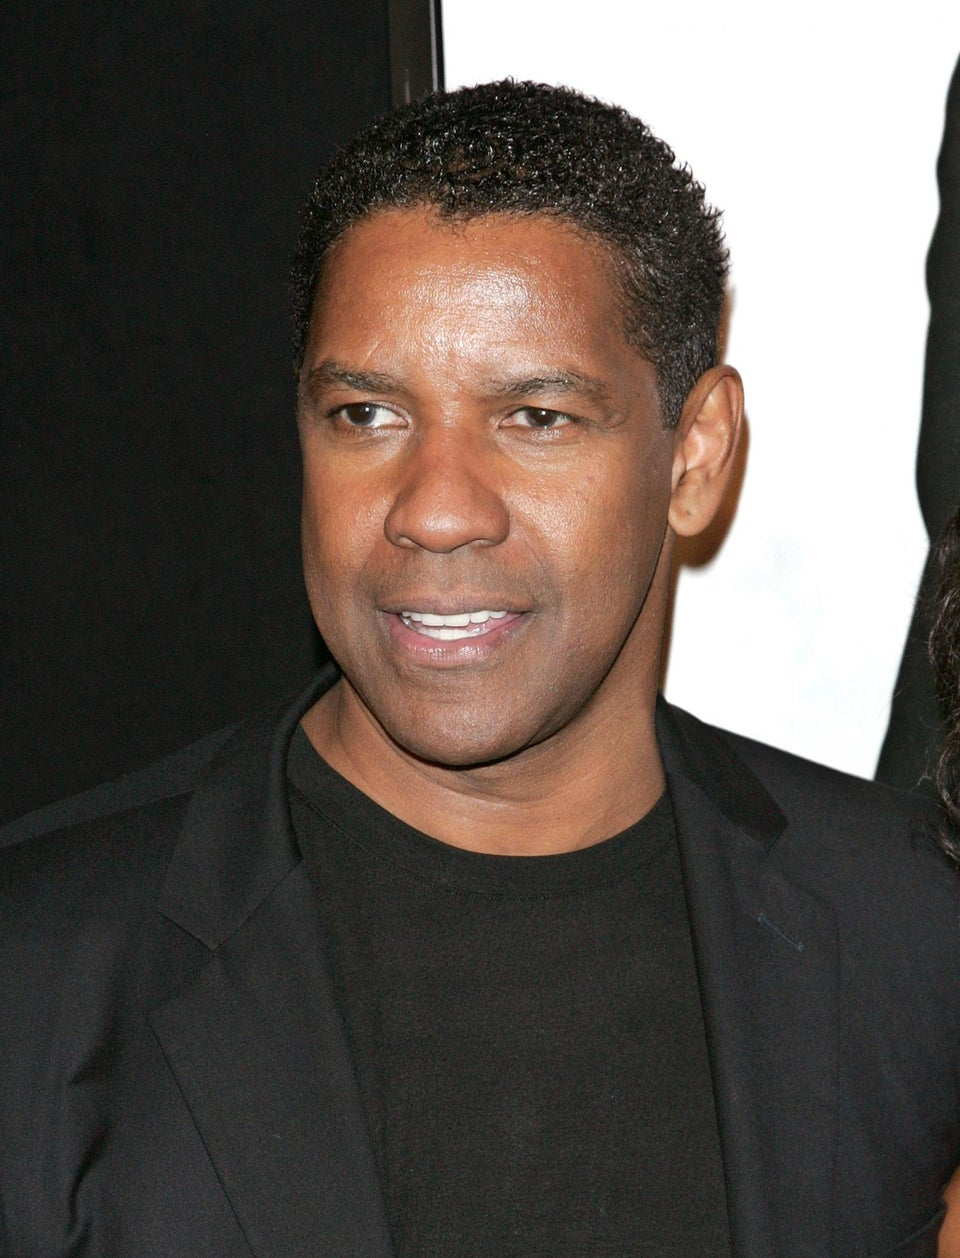 Real Talk: Denzel Washington is Better with Age